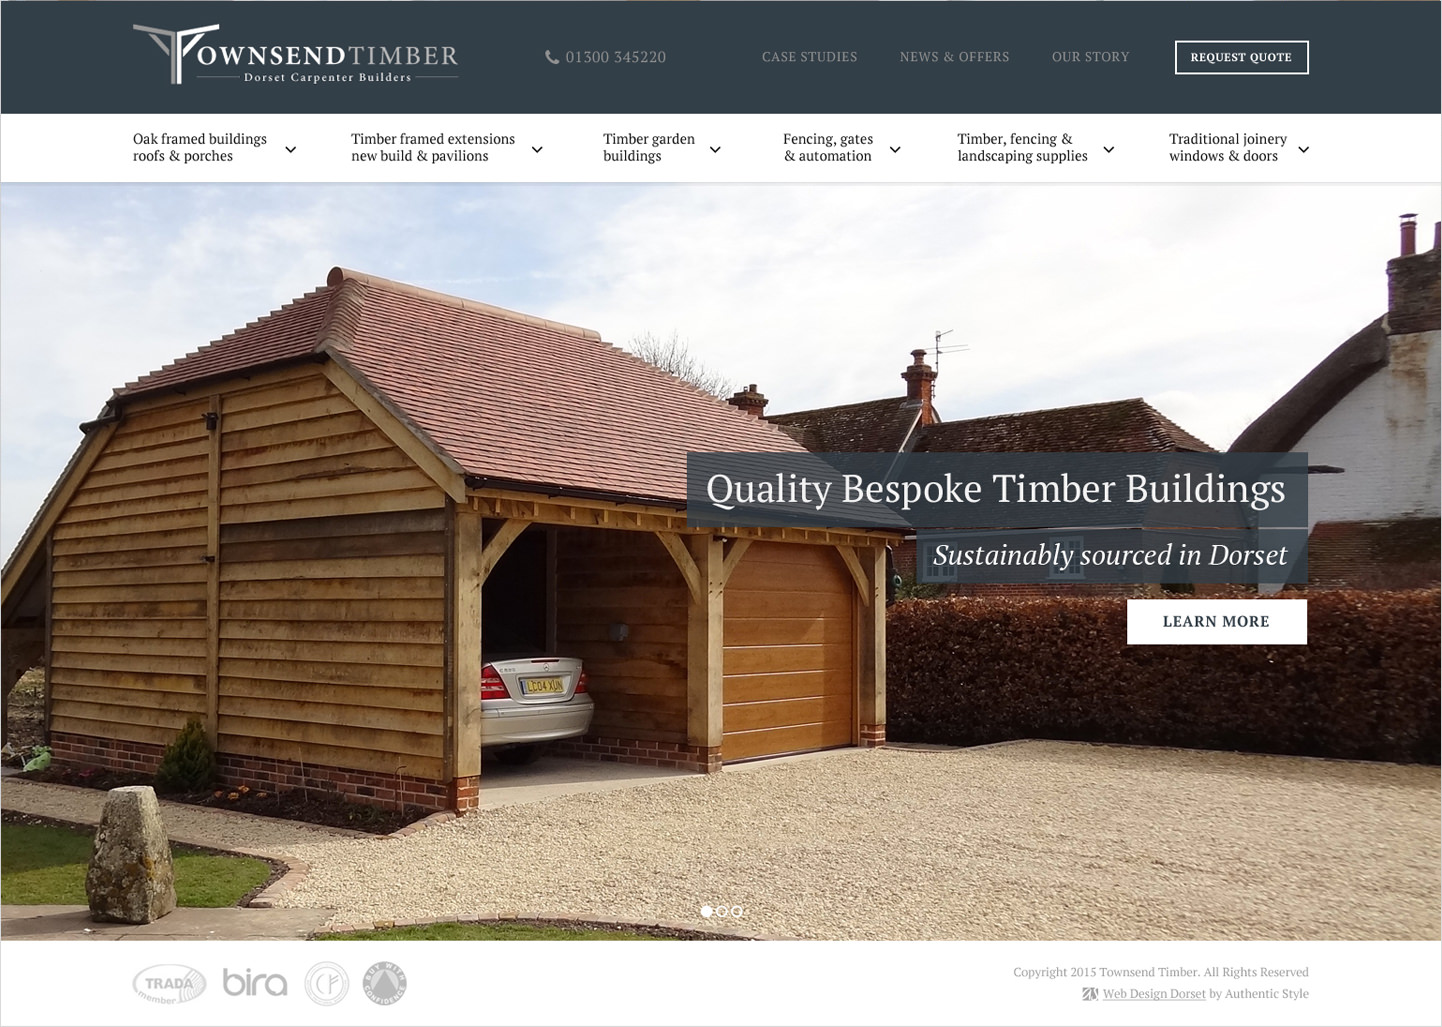 townsend-timber-web-design-home-large